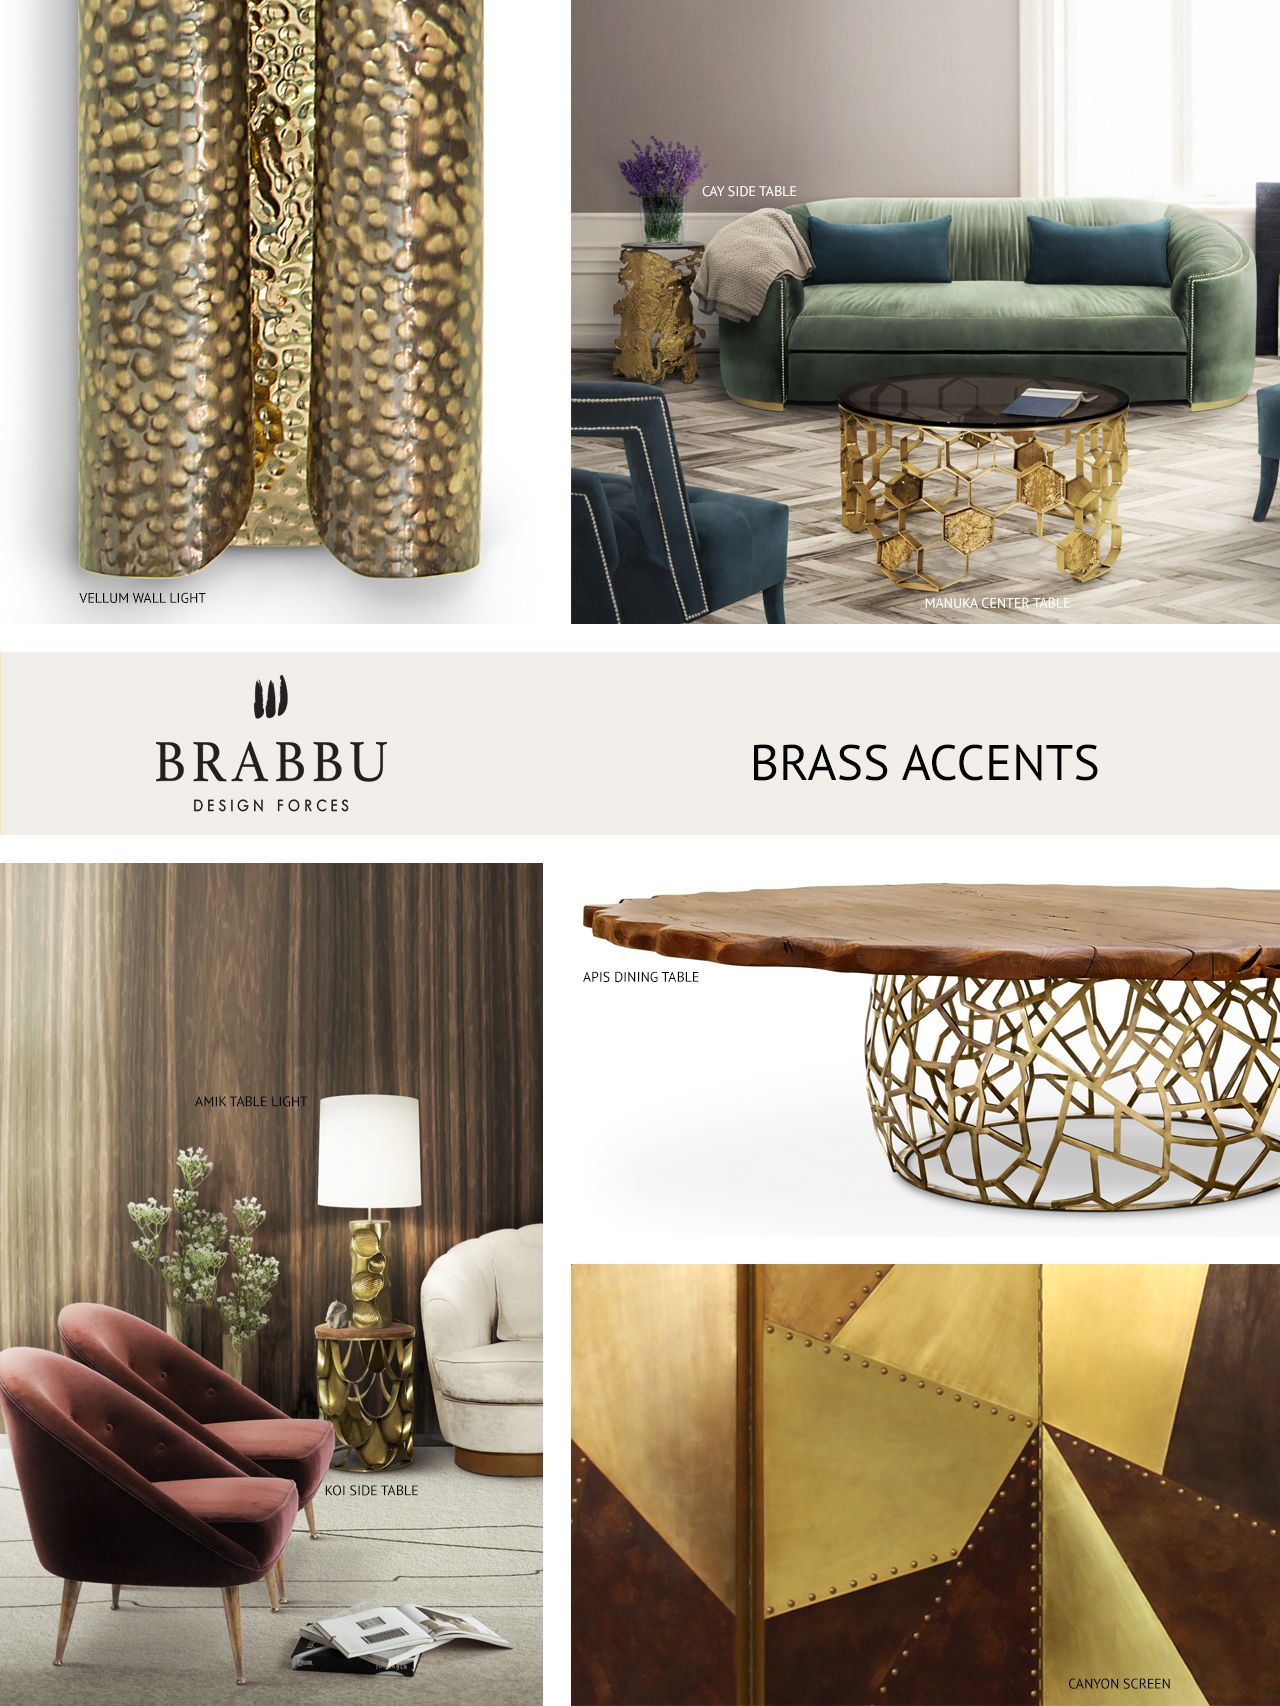 BRASS ACCENTS | The Trendiest Materials For Your Home Decor In 2017 ...